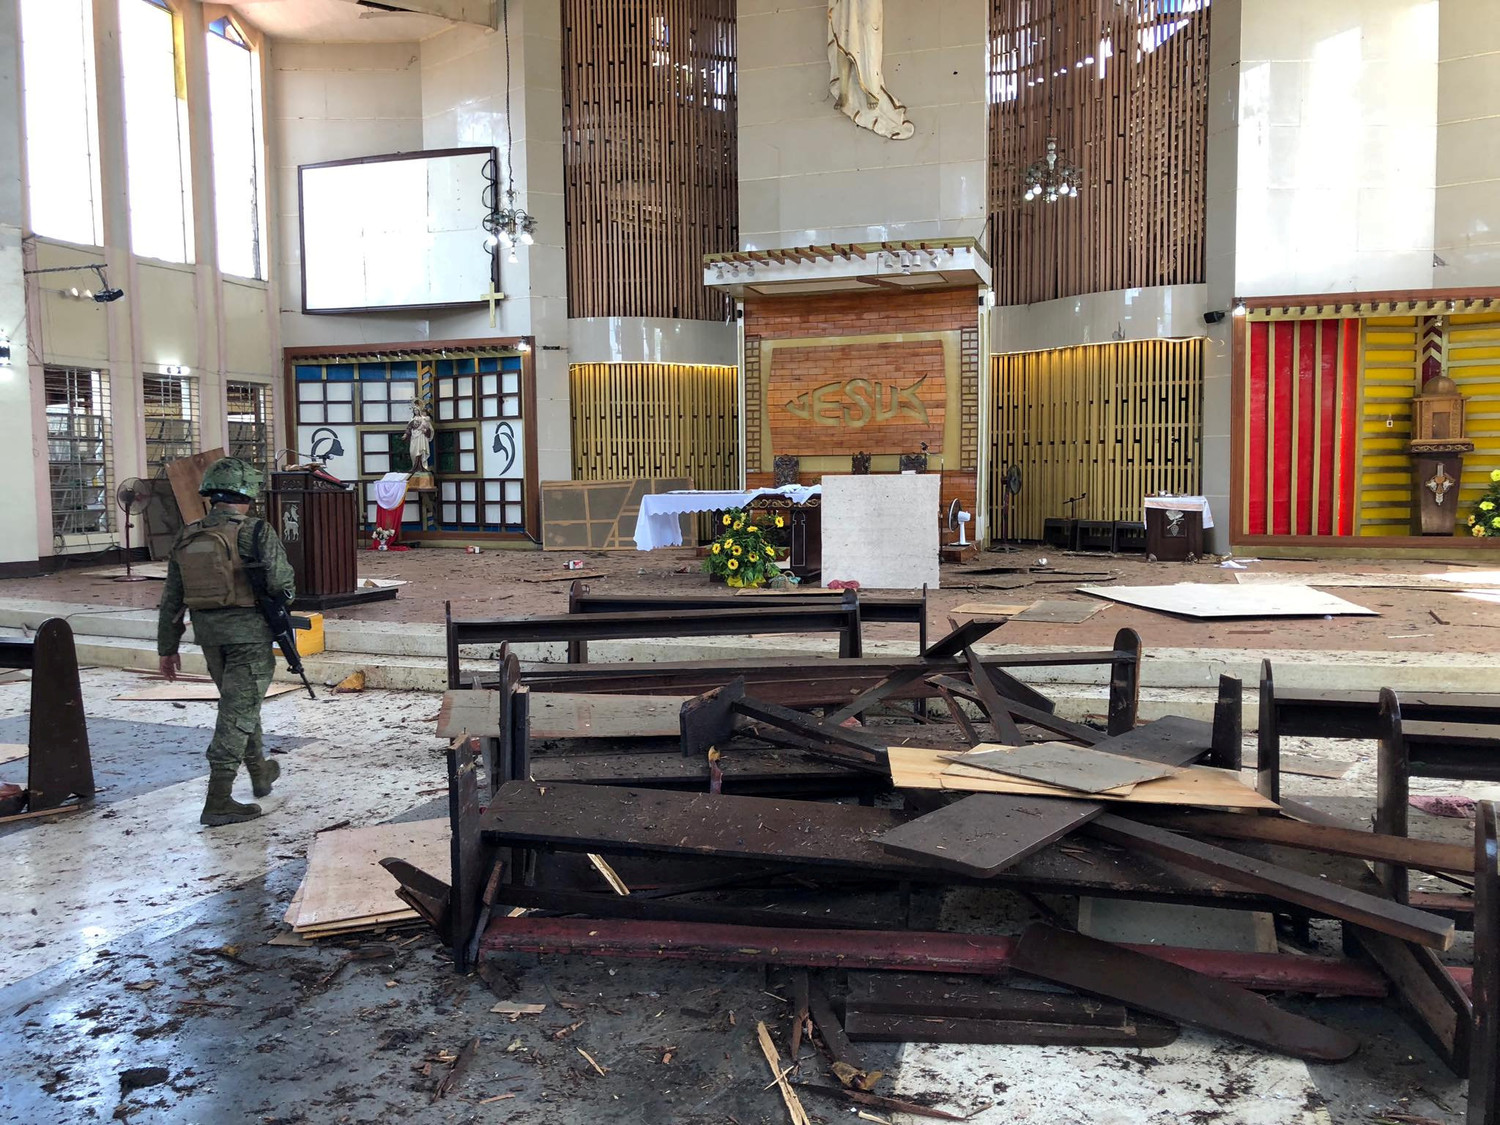 A Philippine army member inspects damage inside the Cathedral of Our Lady of Mount Carmel following a bomb blast in Jolo Jan. 27, 2019. The explosion, just before morning Mass, killed at least 20 people and wounded dozens of others.